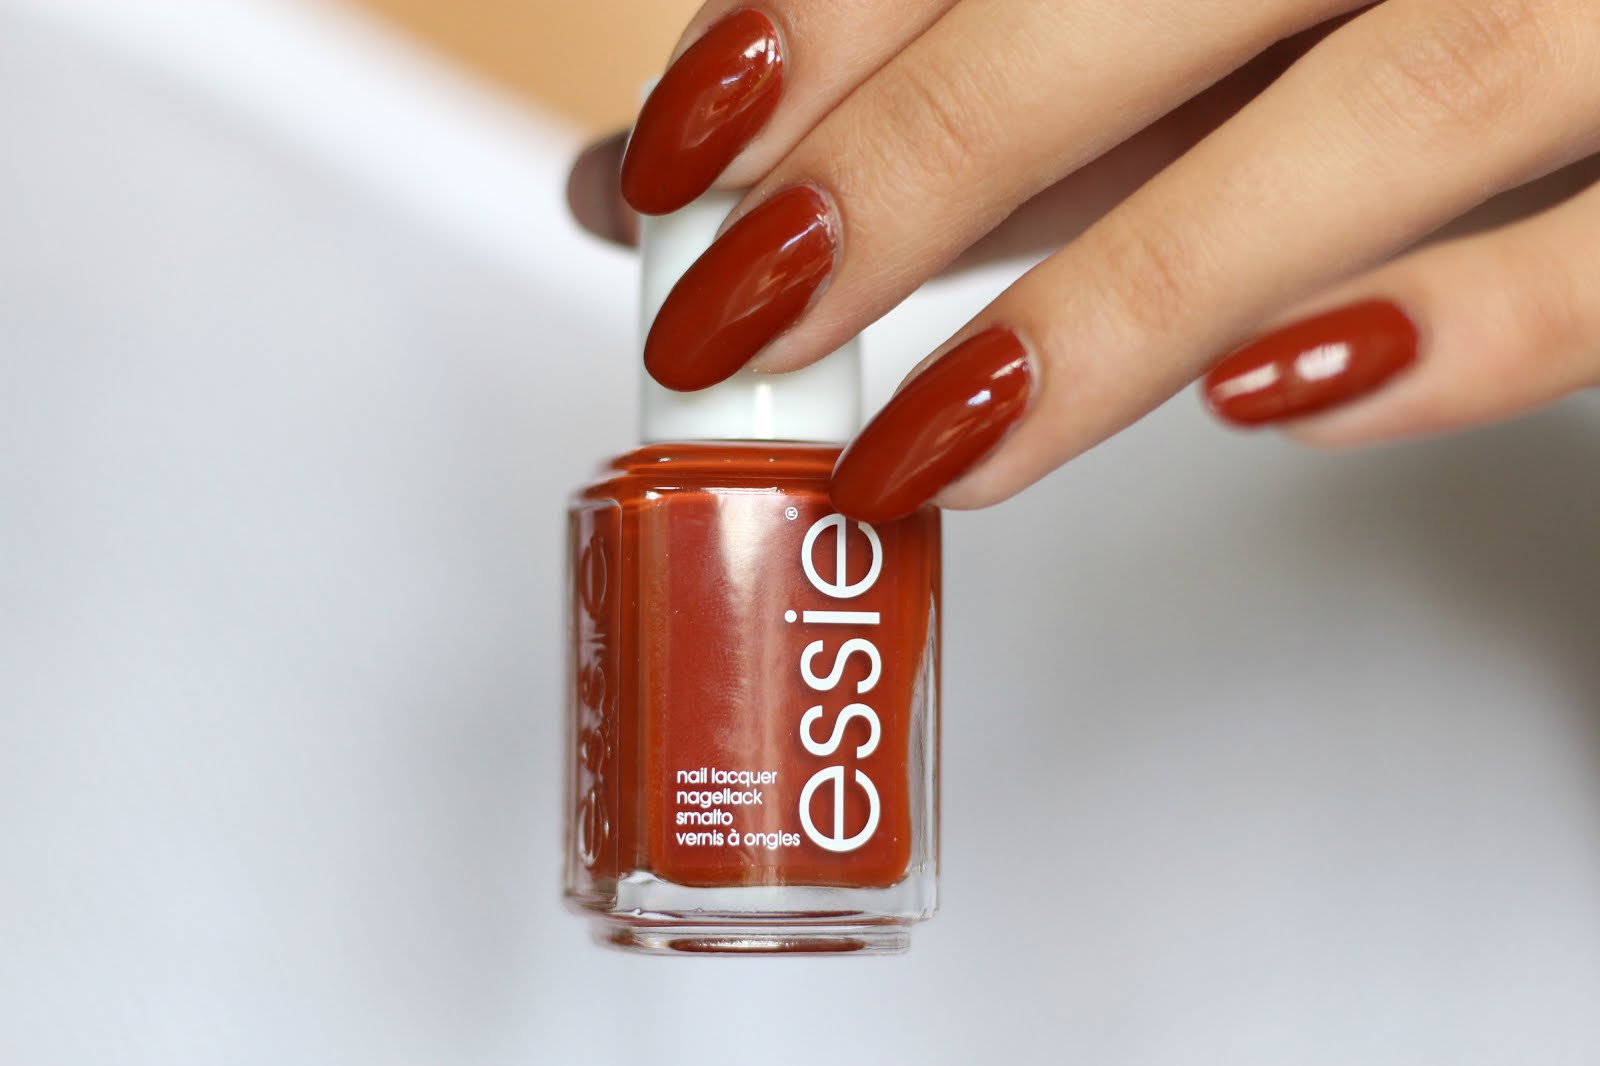 essie playing koi, playing koi, essie playing koi nail polish, essie nail polish